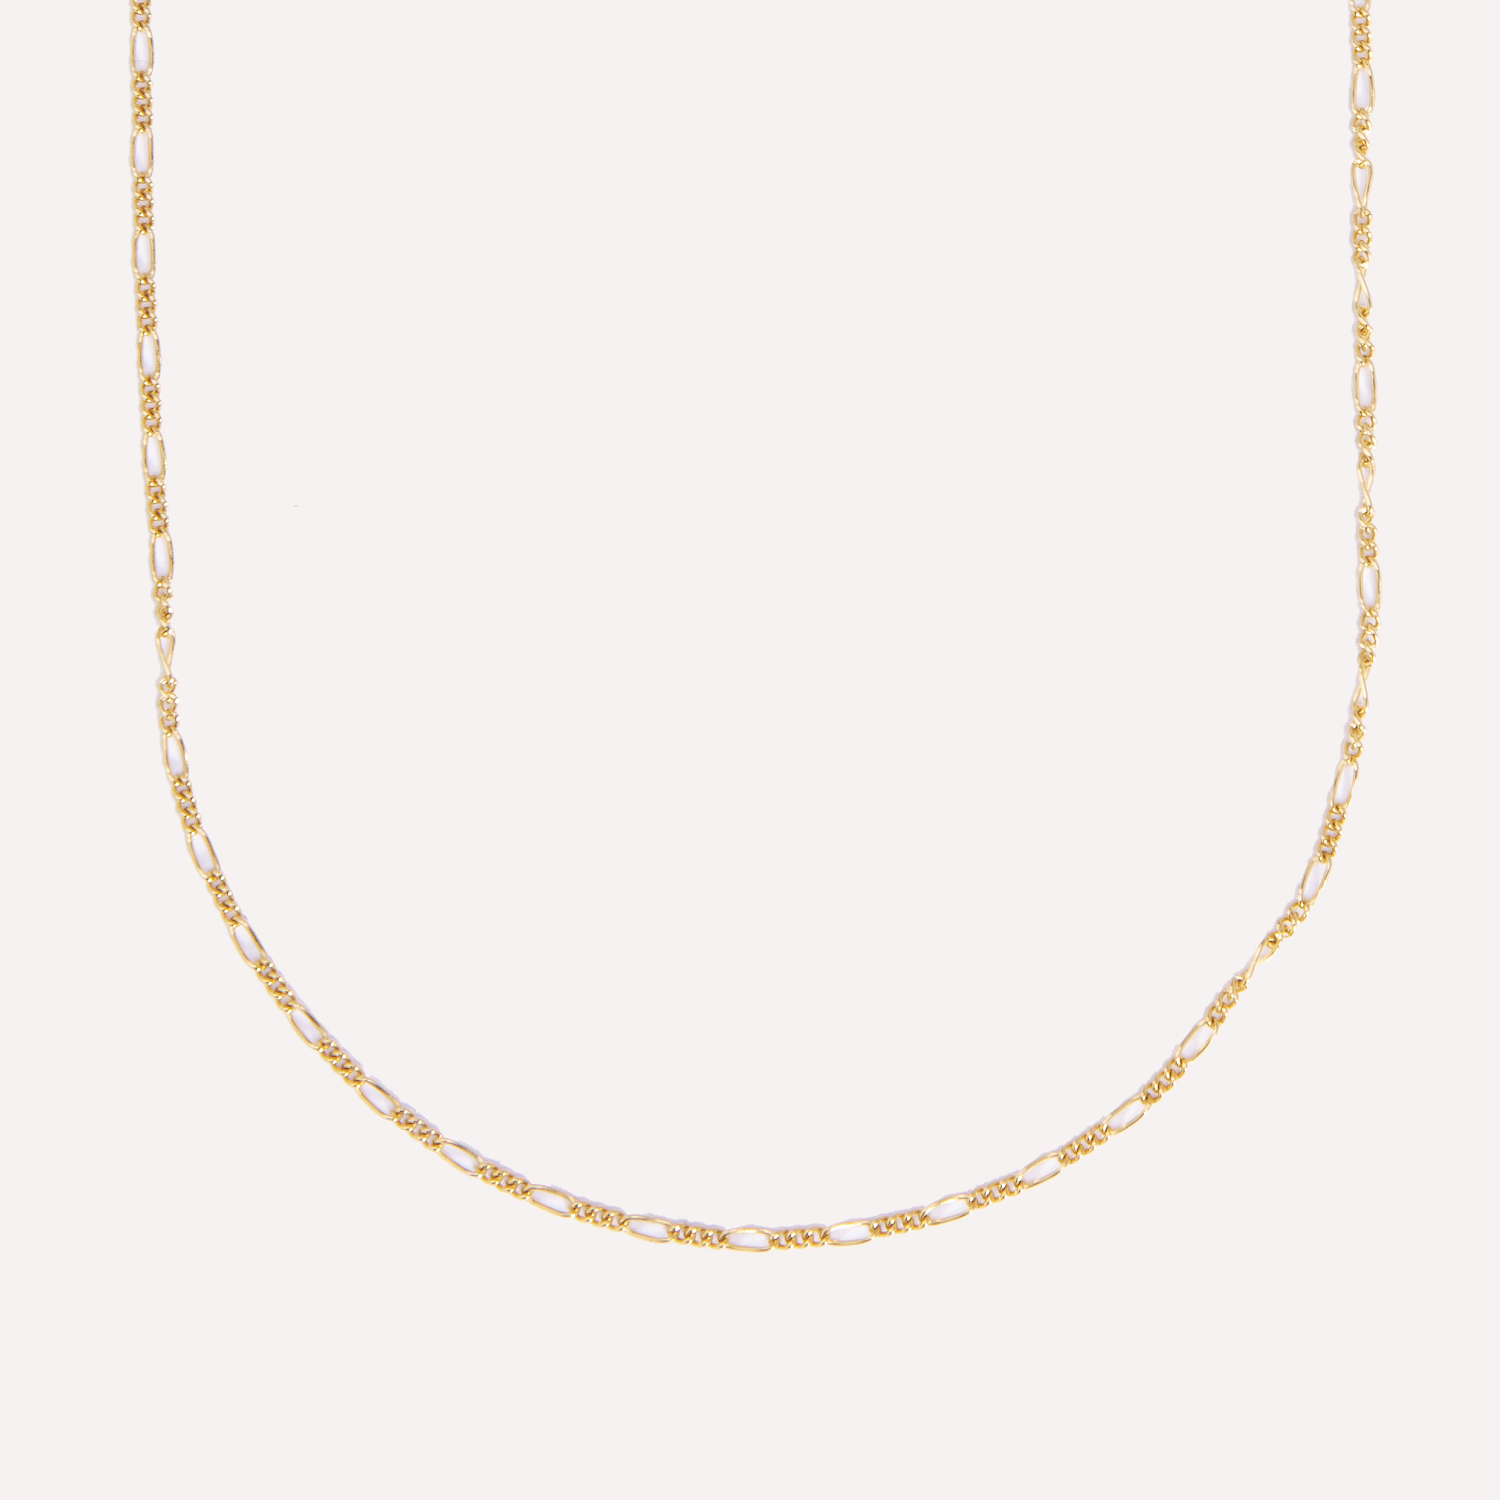 elyse chain in 14k gold.